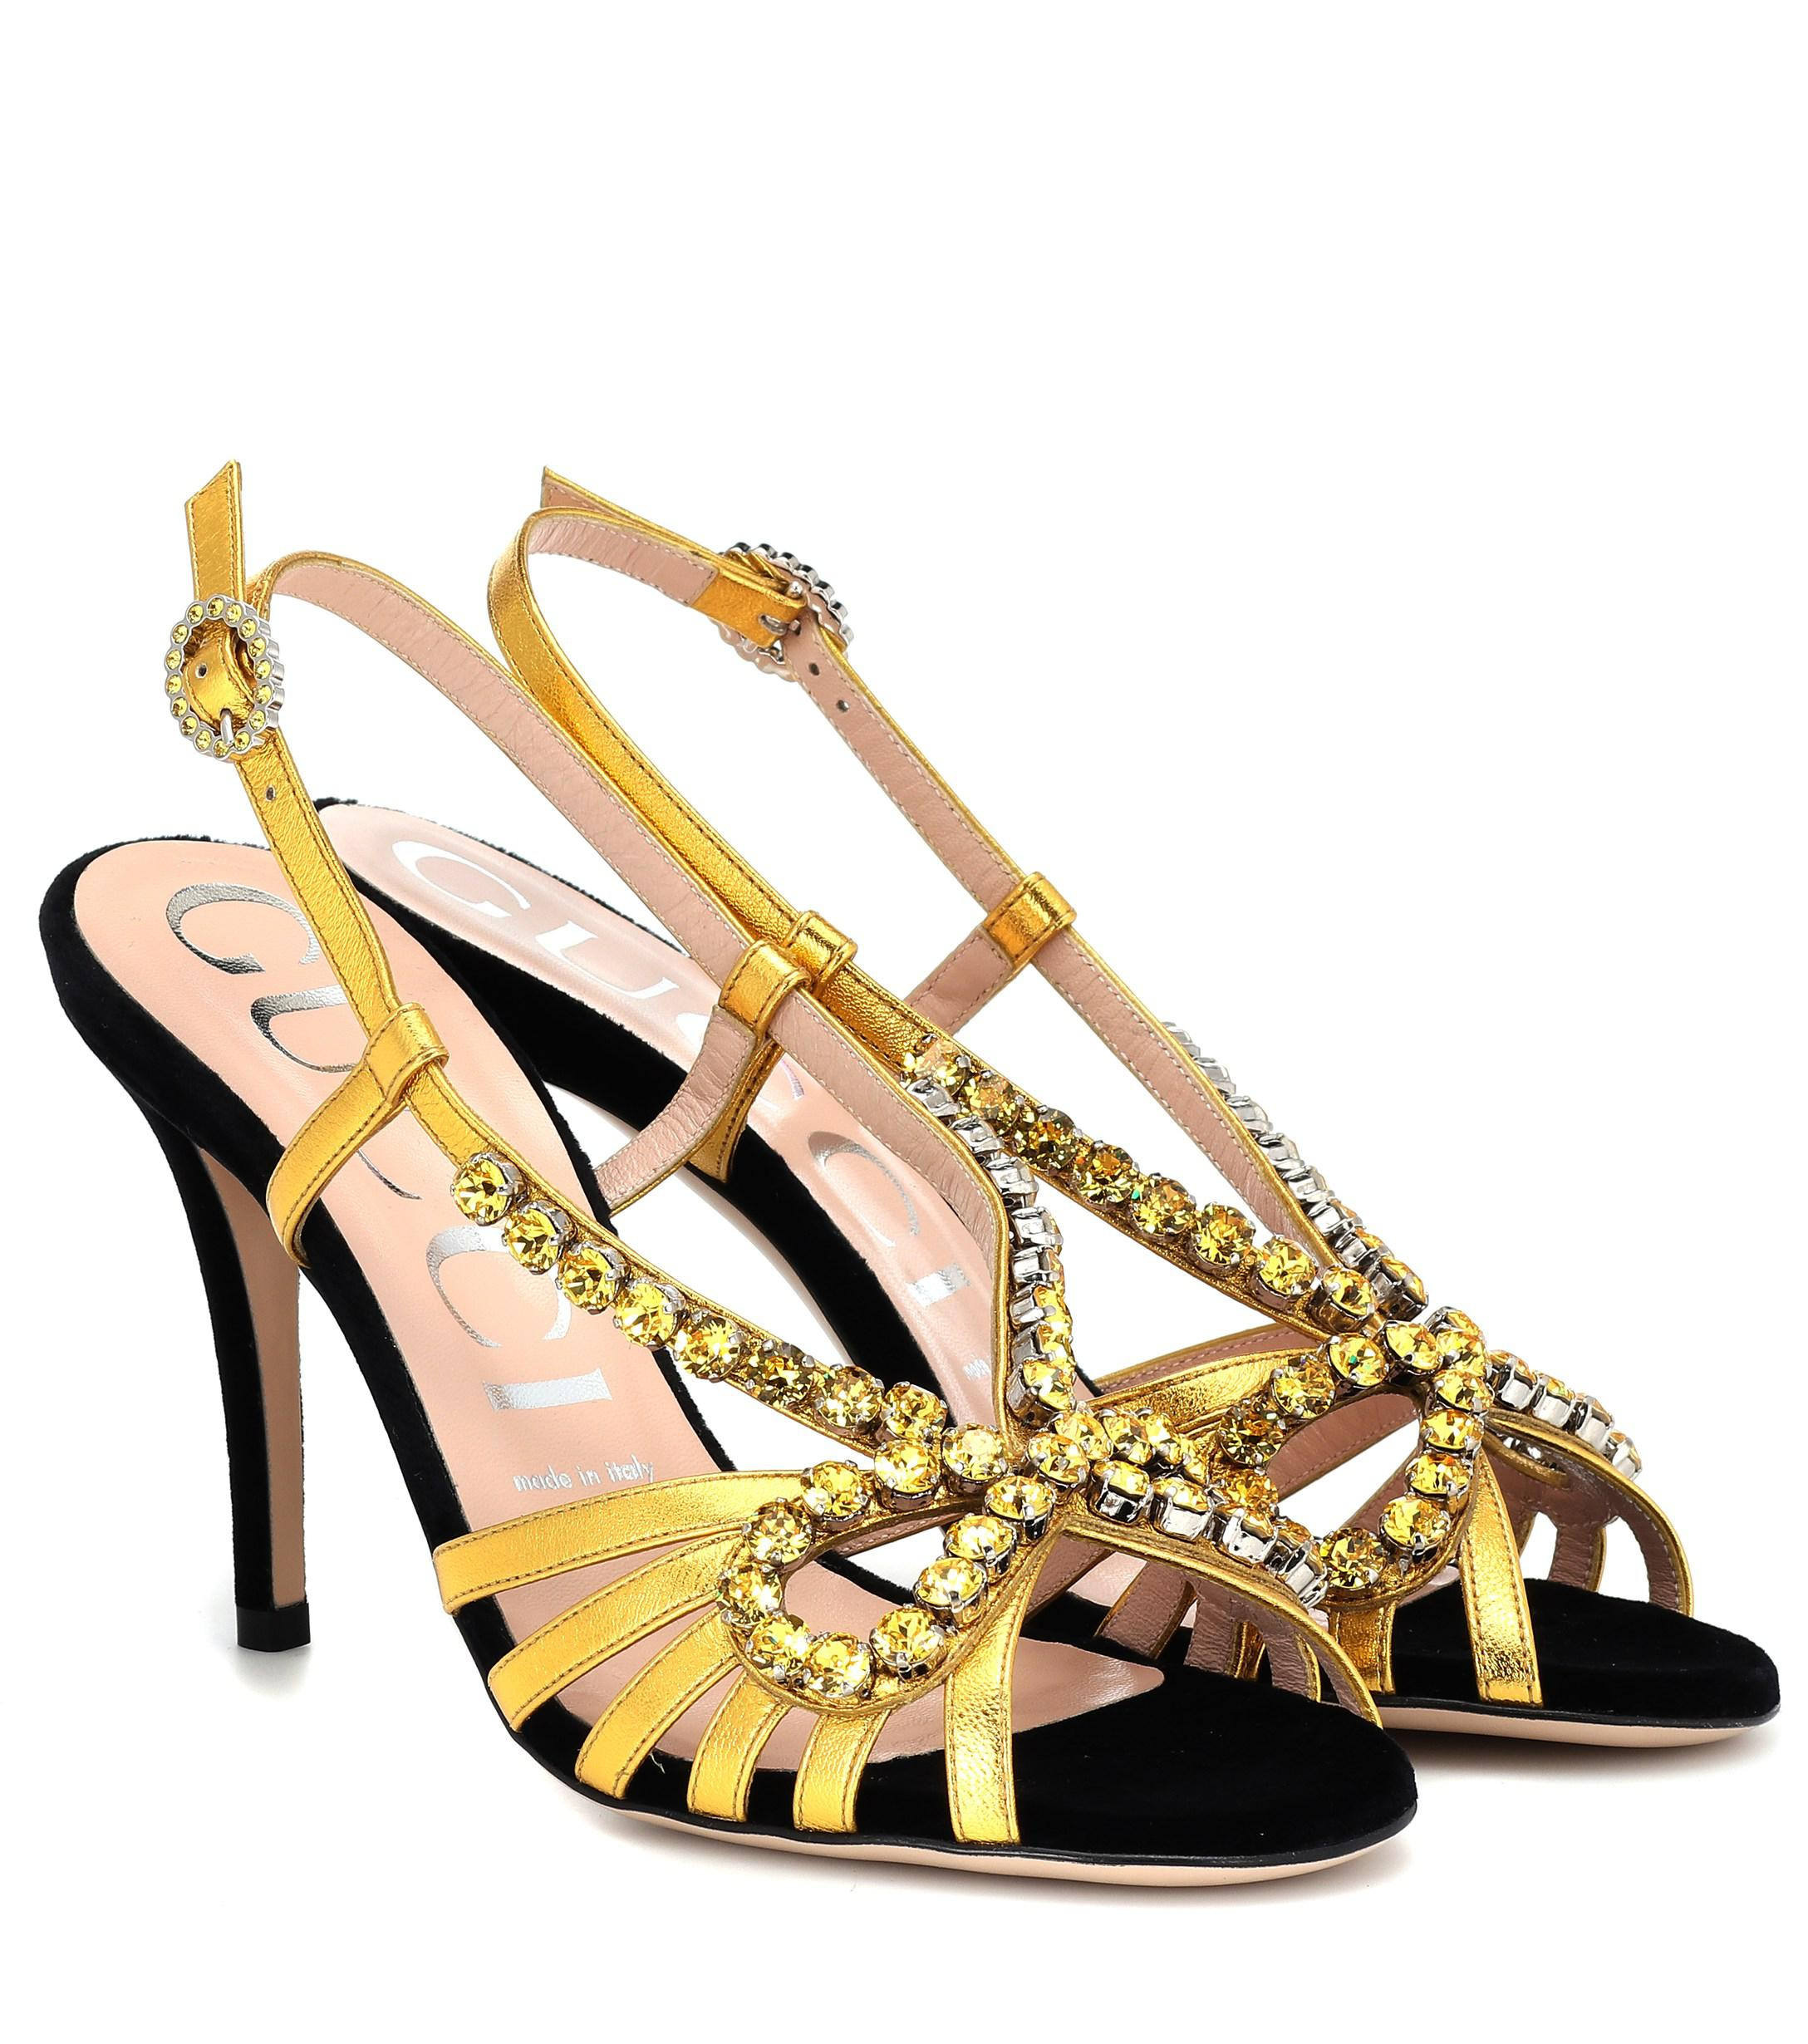 6f97d5d2b0c Lyst - Gucci Embellished Metallic Leather Sandals in Metallic